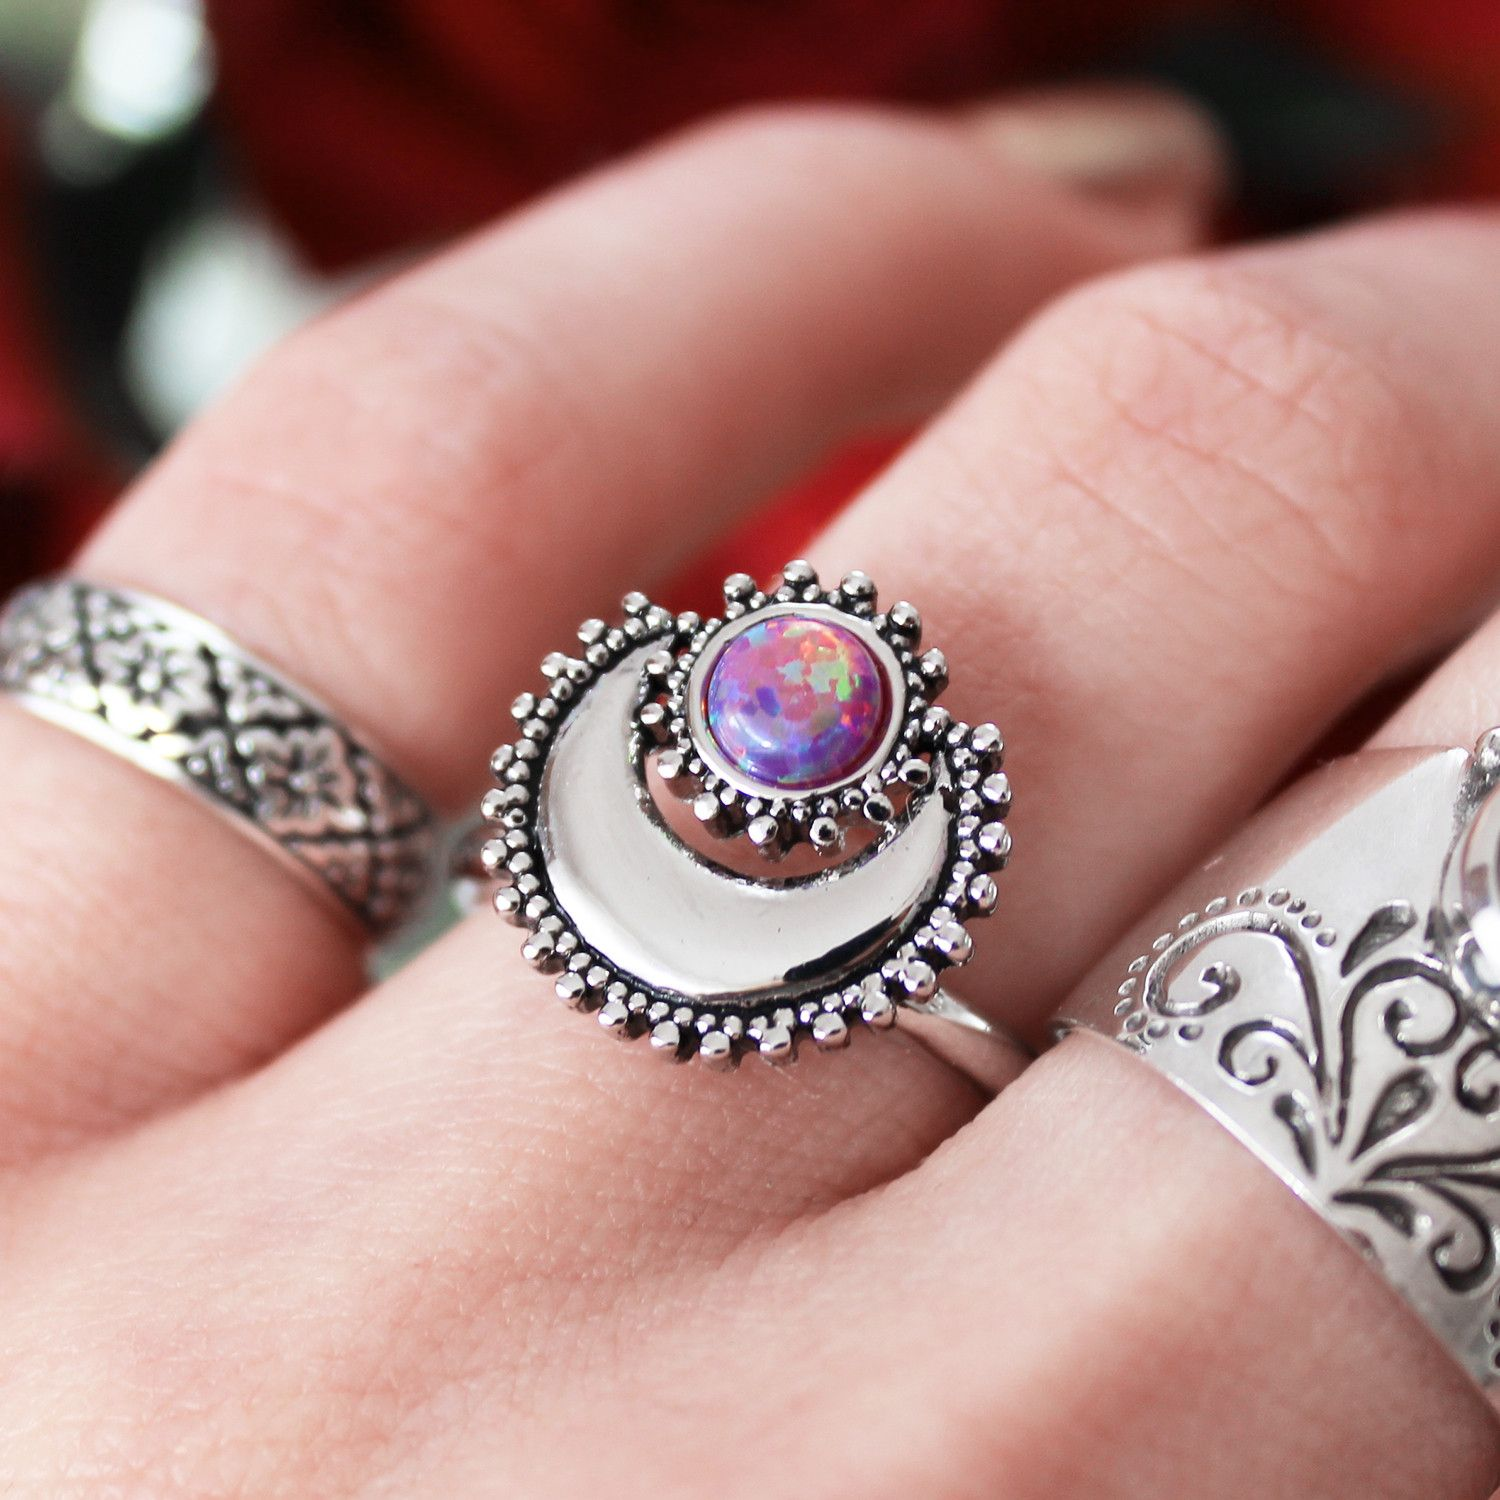 Moonshine Lavender Opal Ring | Accessories | Pinterest | Opal rings ...